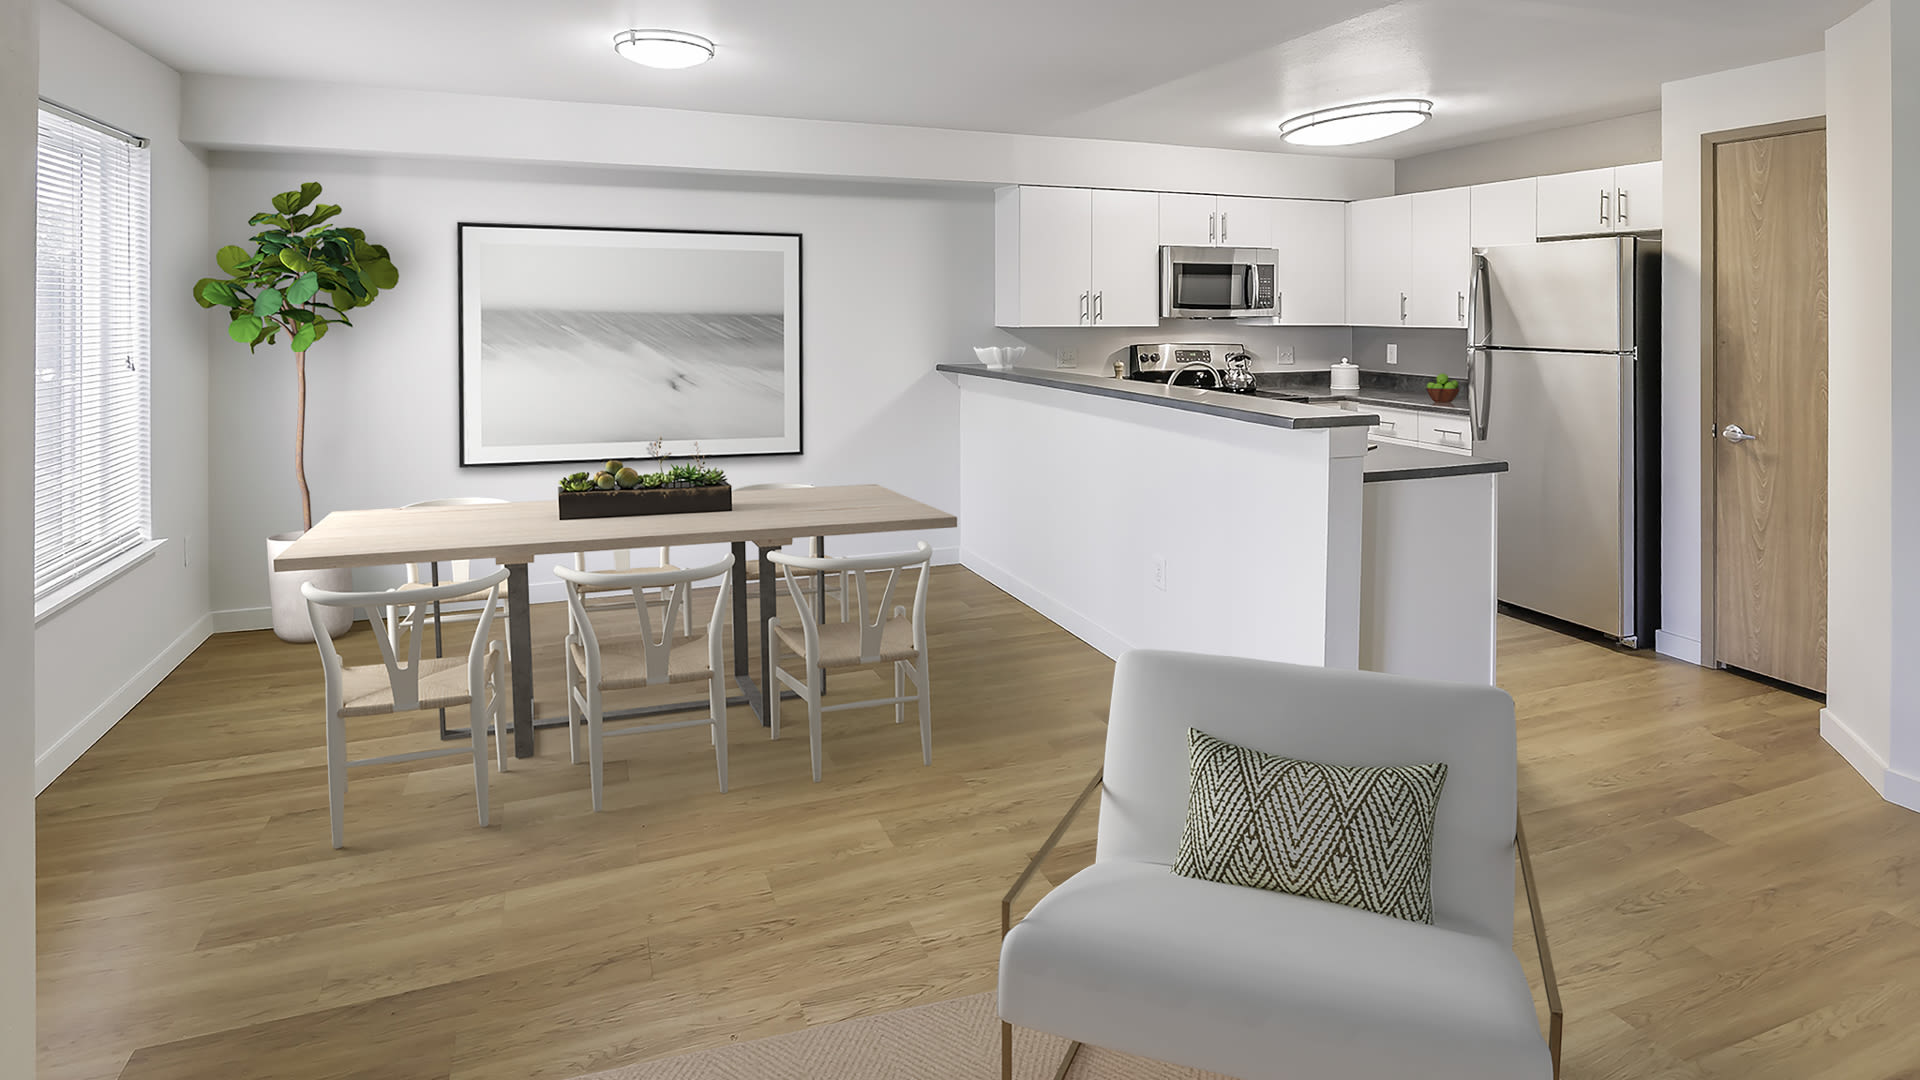 Heritage Ridge Apartments - Living Room and Kitchen